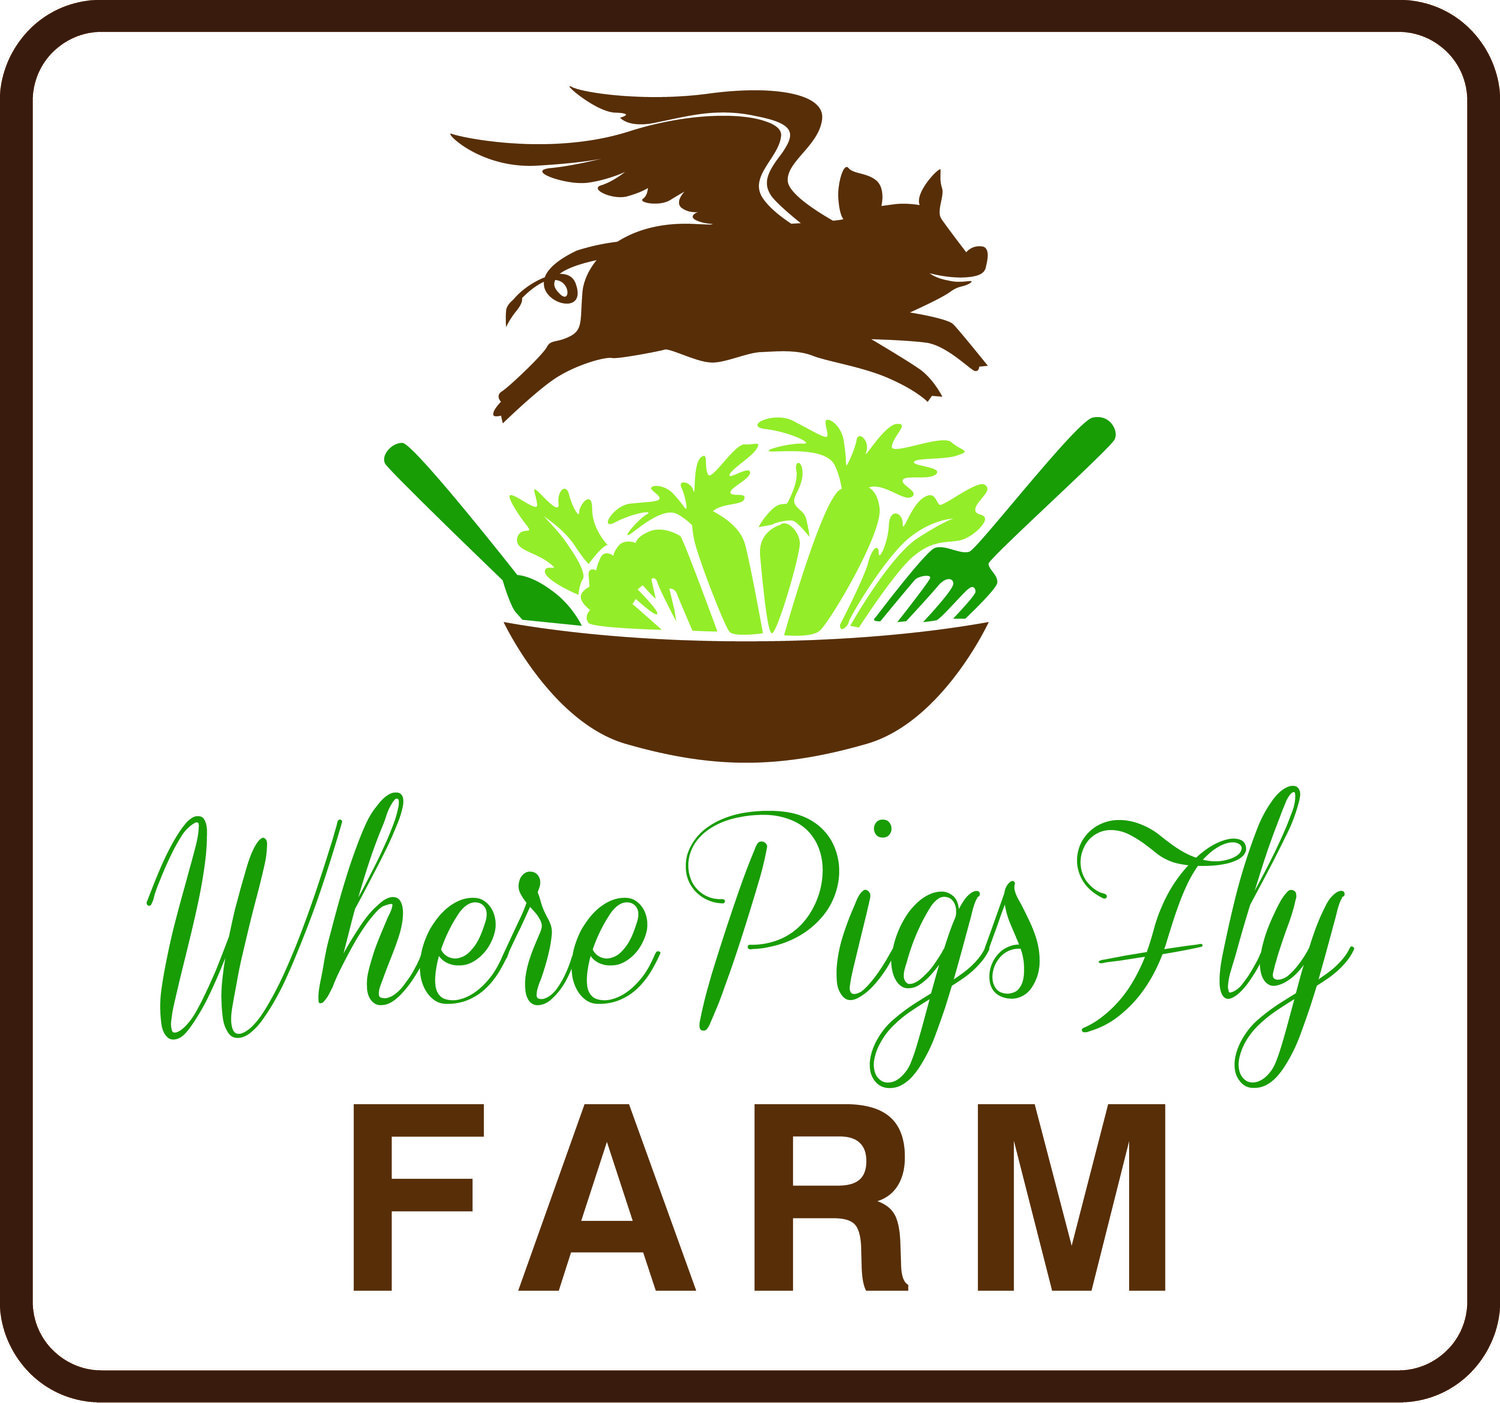 Where Pigs Fly Farm